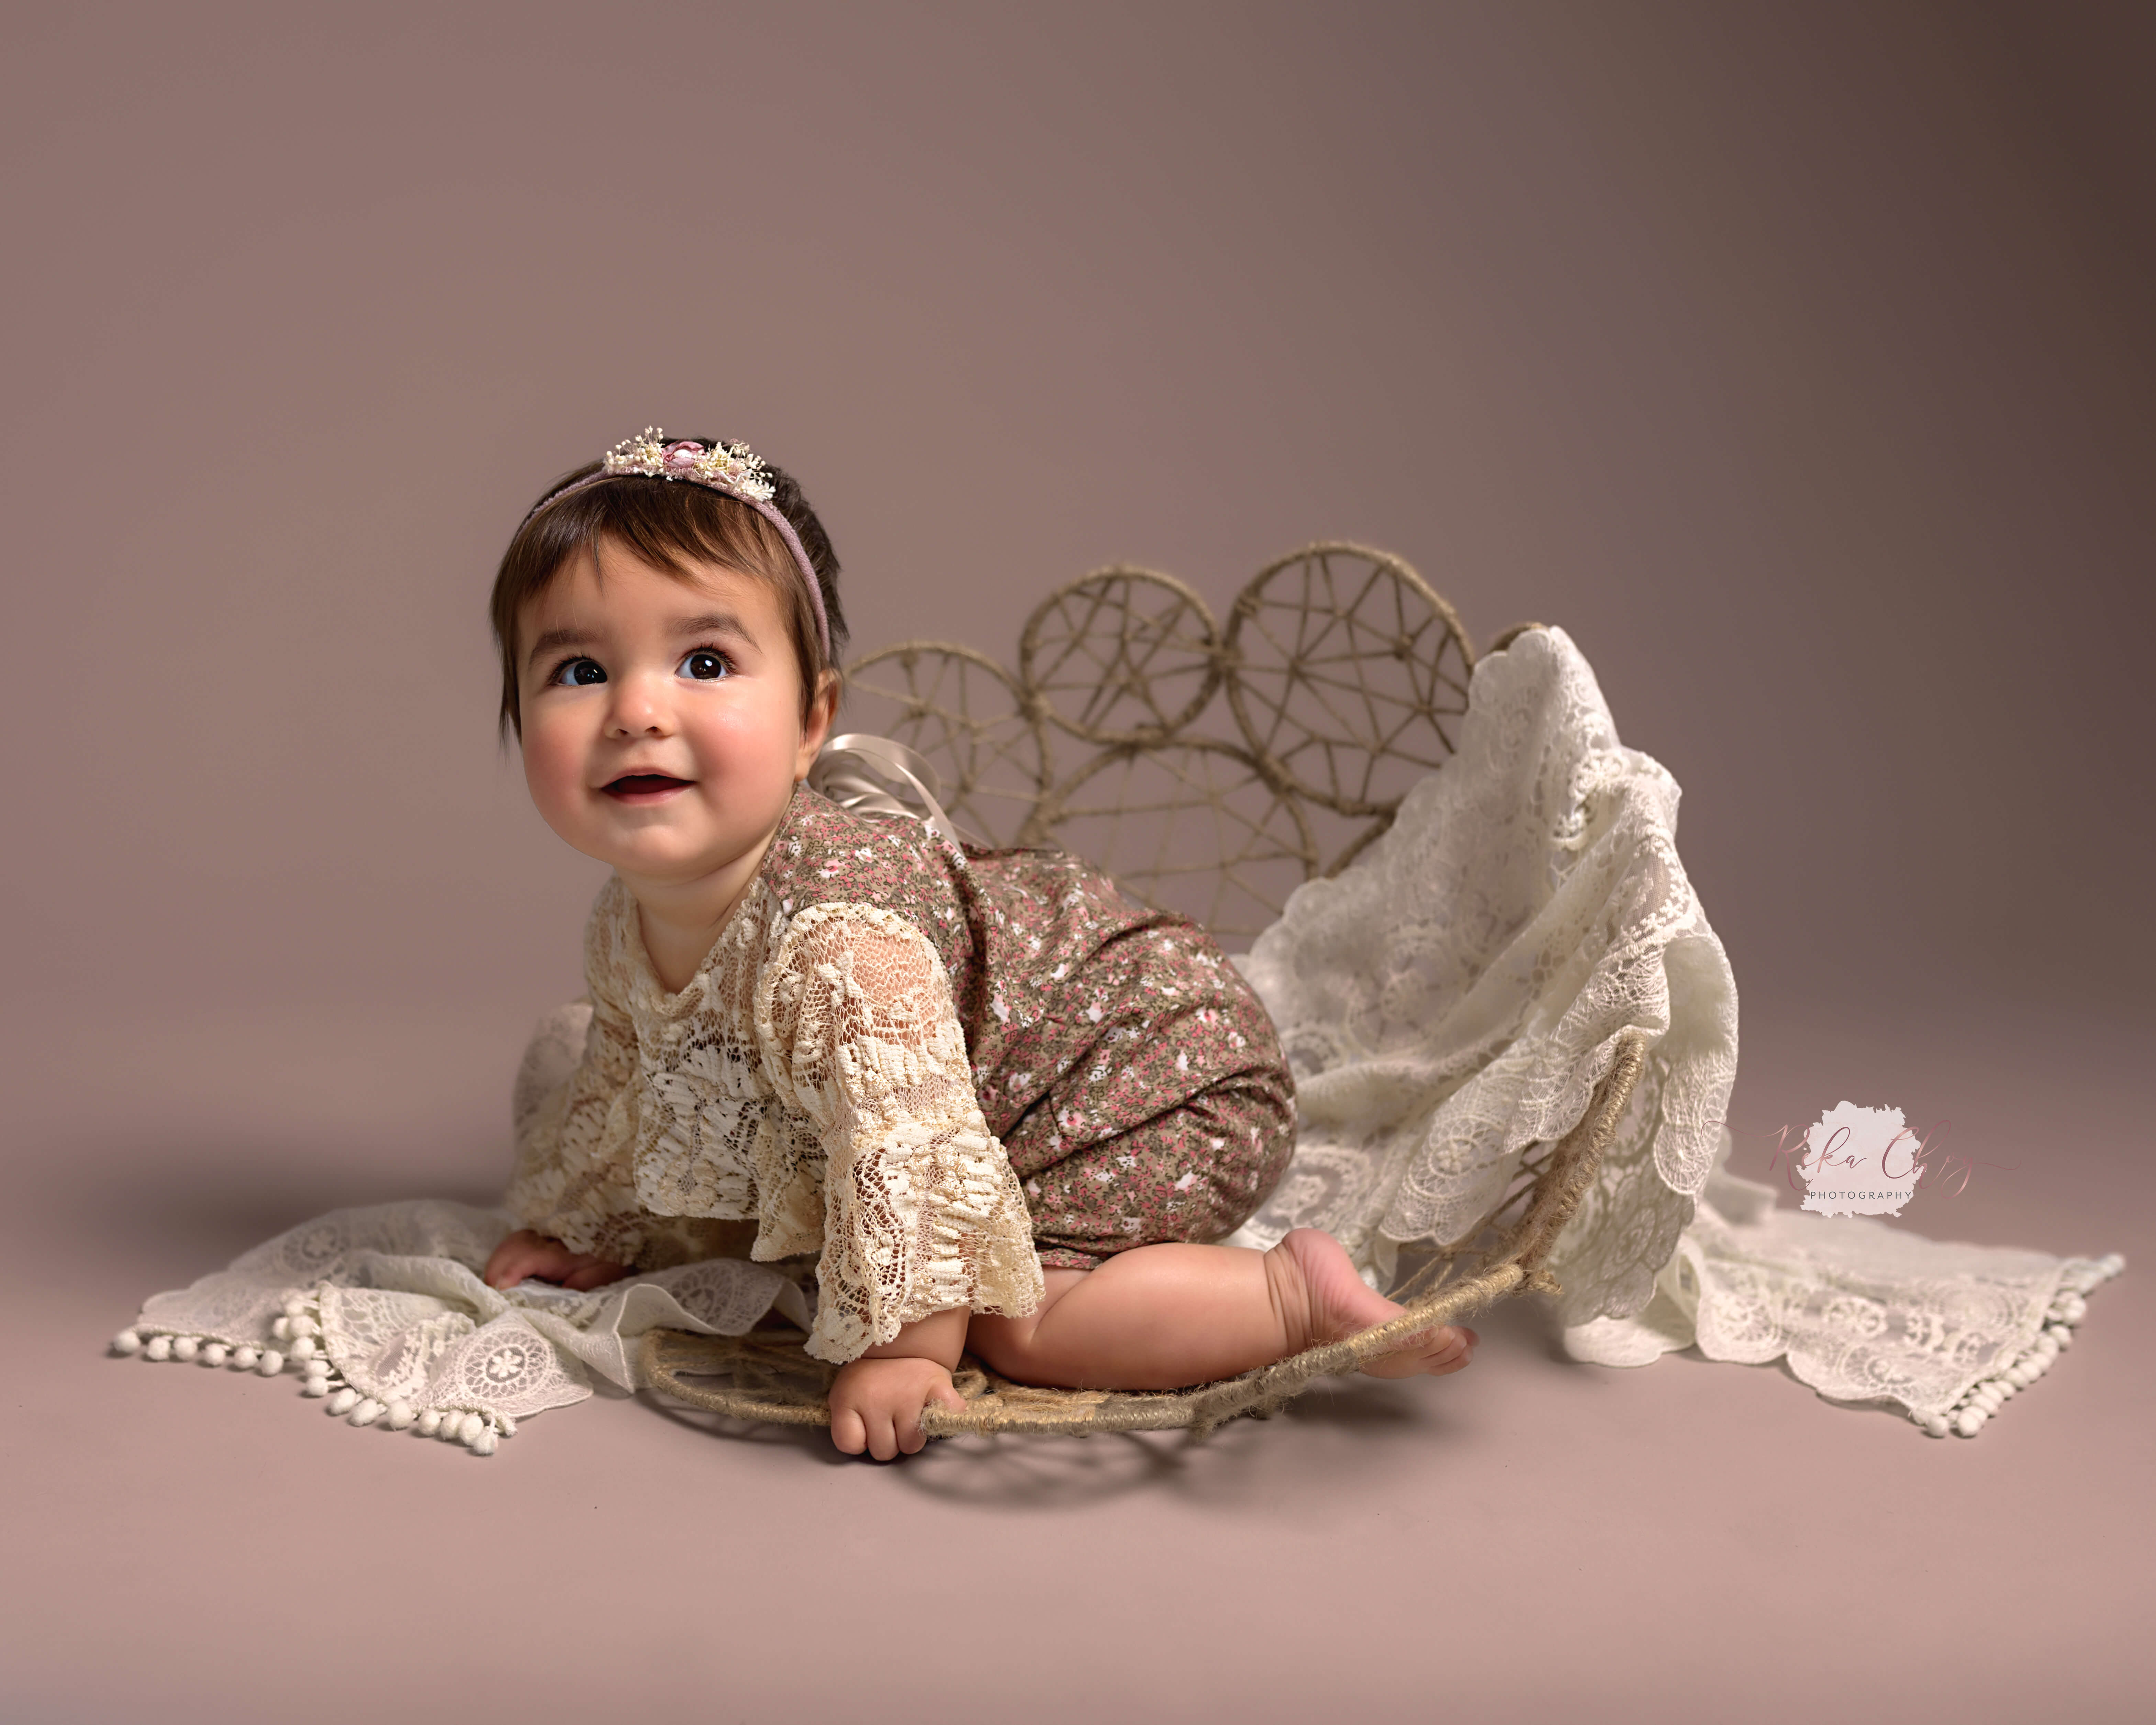 baby at sitter photoshoot vintage clothing